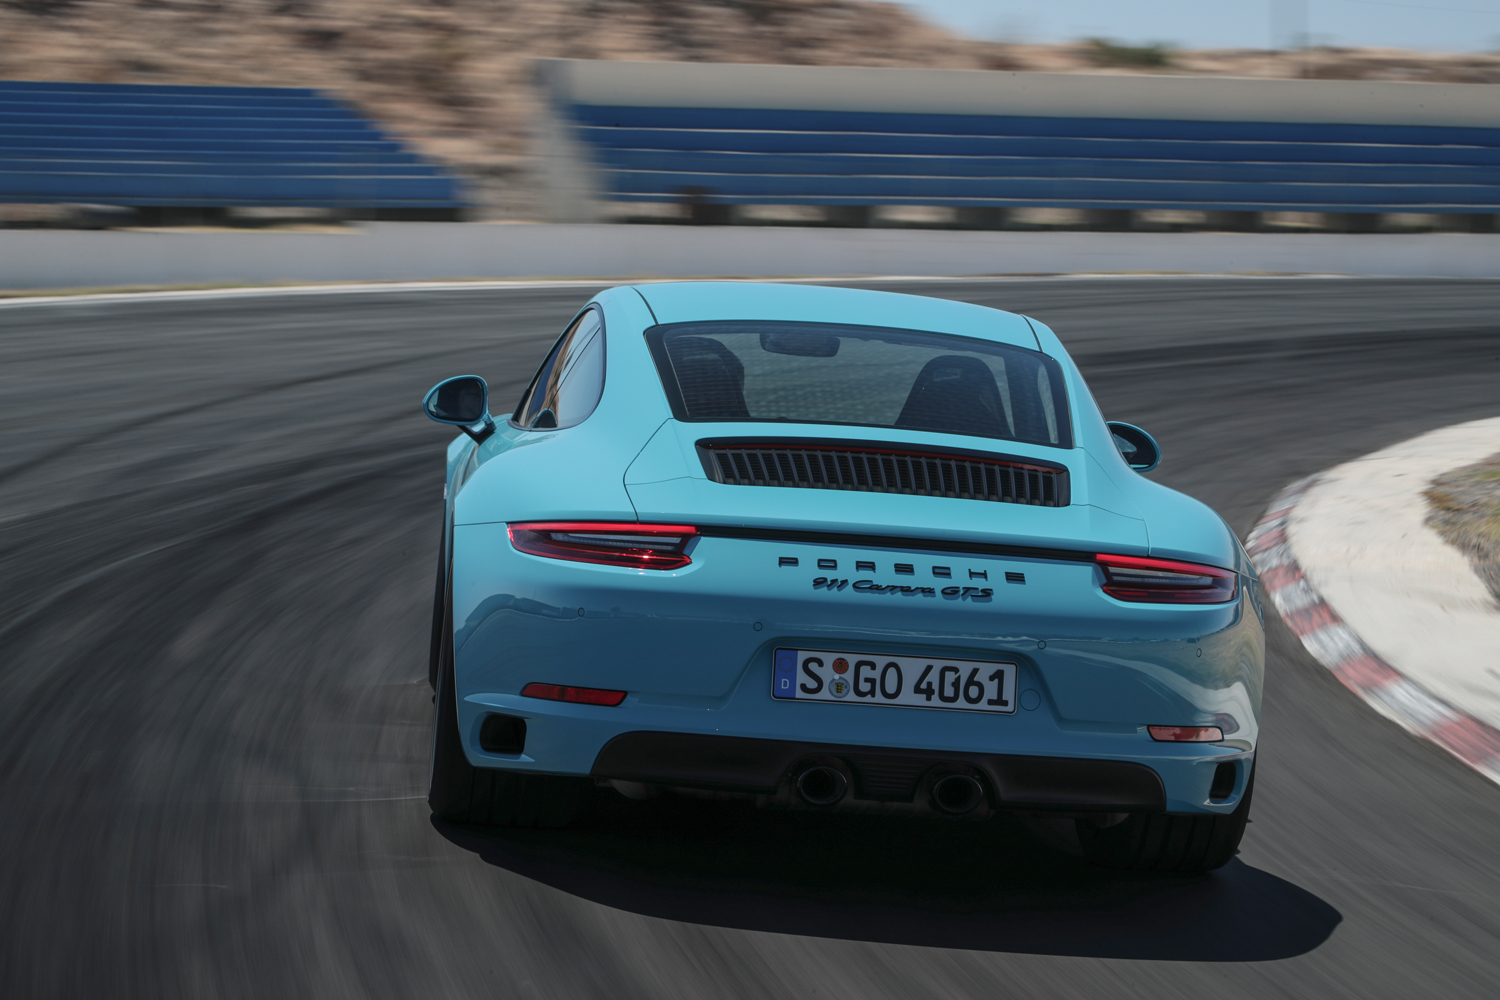 911 Carrera Gts >> Porsche 911 Carrera Gts Review The Most Thrilling Drive